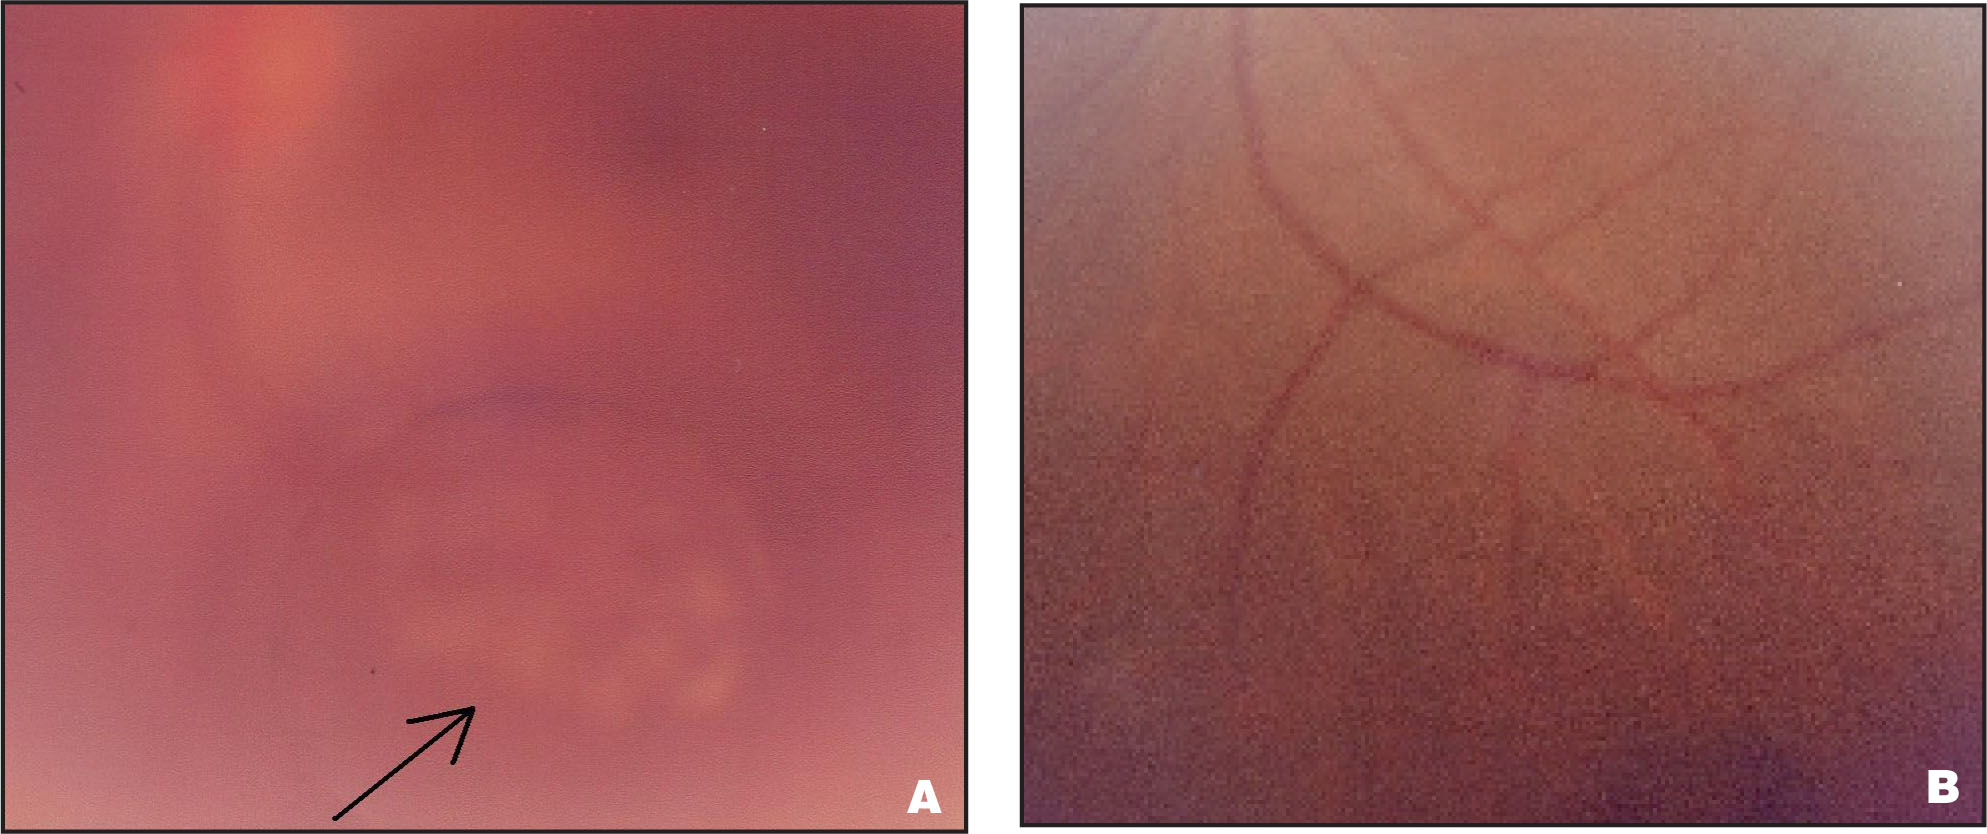 Fundus Photos (A) Immediately After Argon Laser Treatment, with Burn Spots Indicated by the Arrow, and (B) 2-Weeks After Treatment, with a Cyst Remnant Settled Inferiorly.